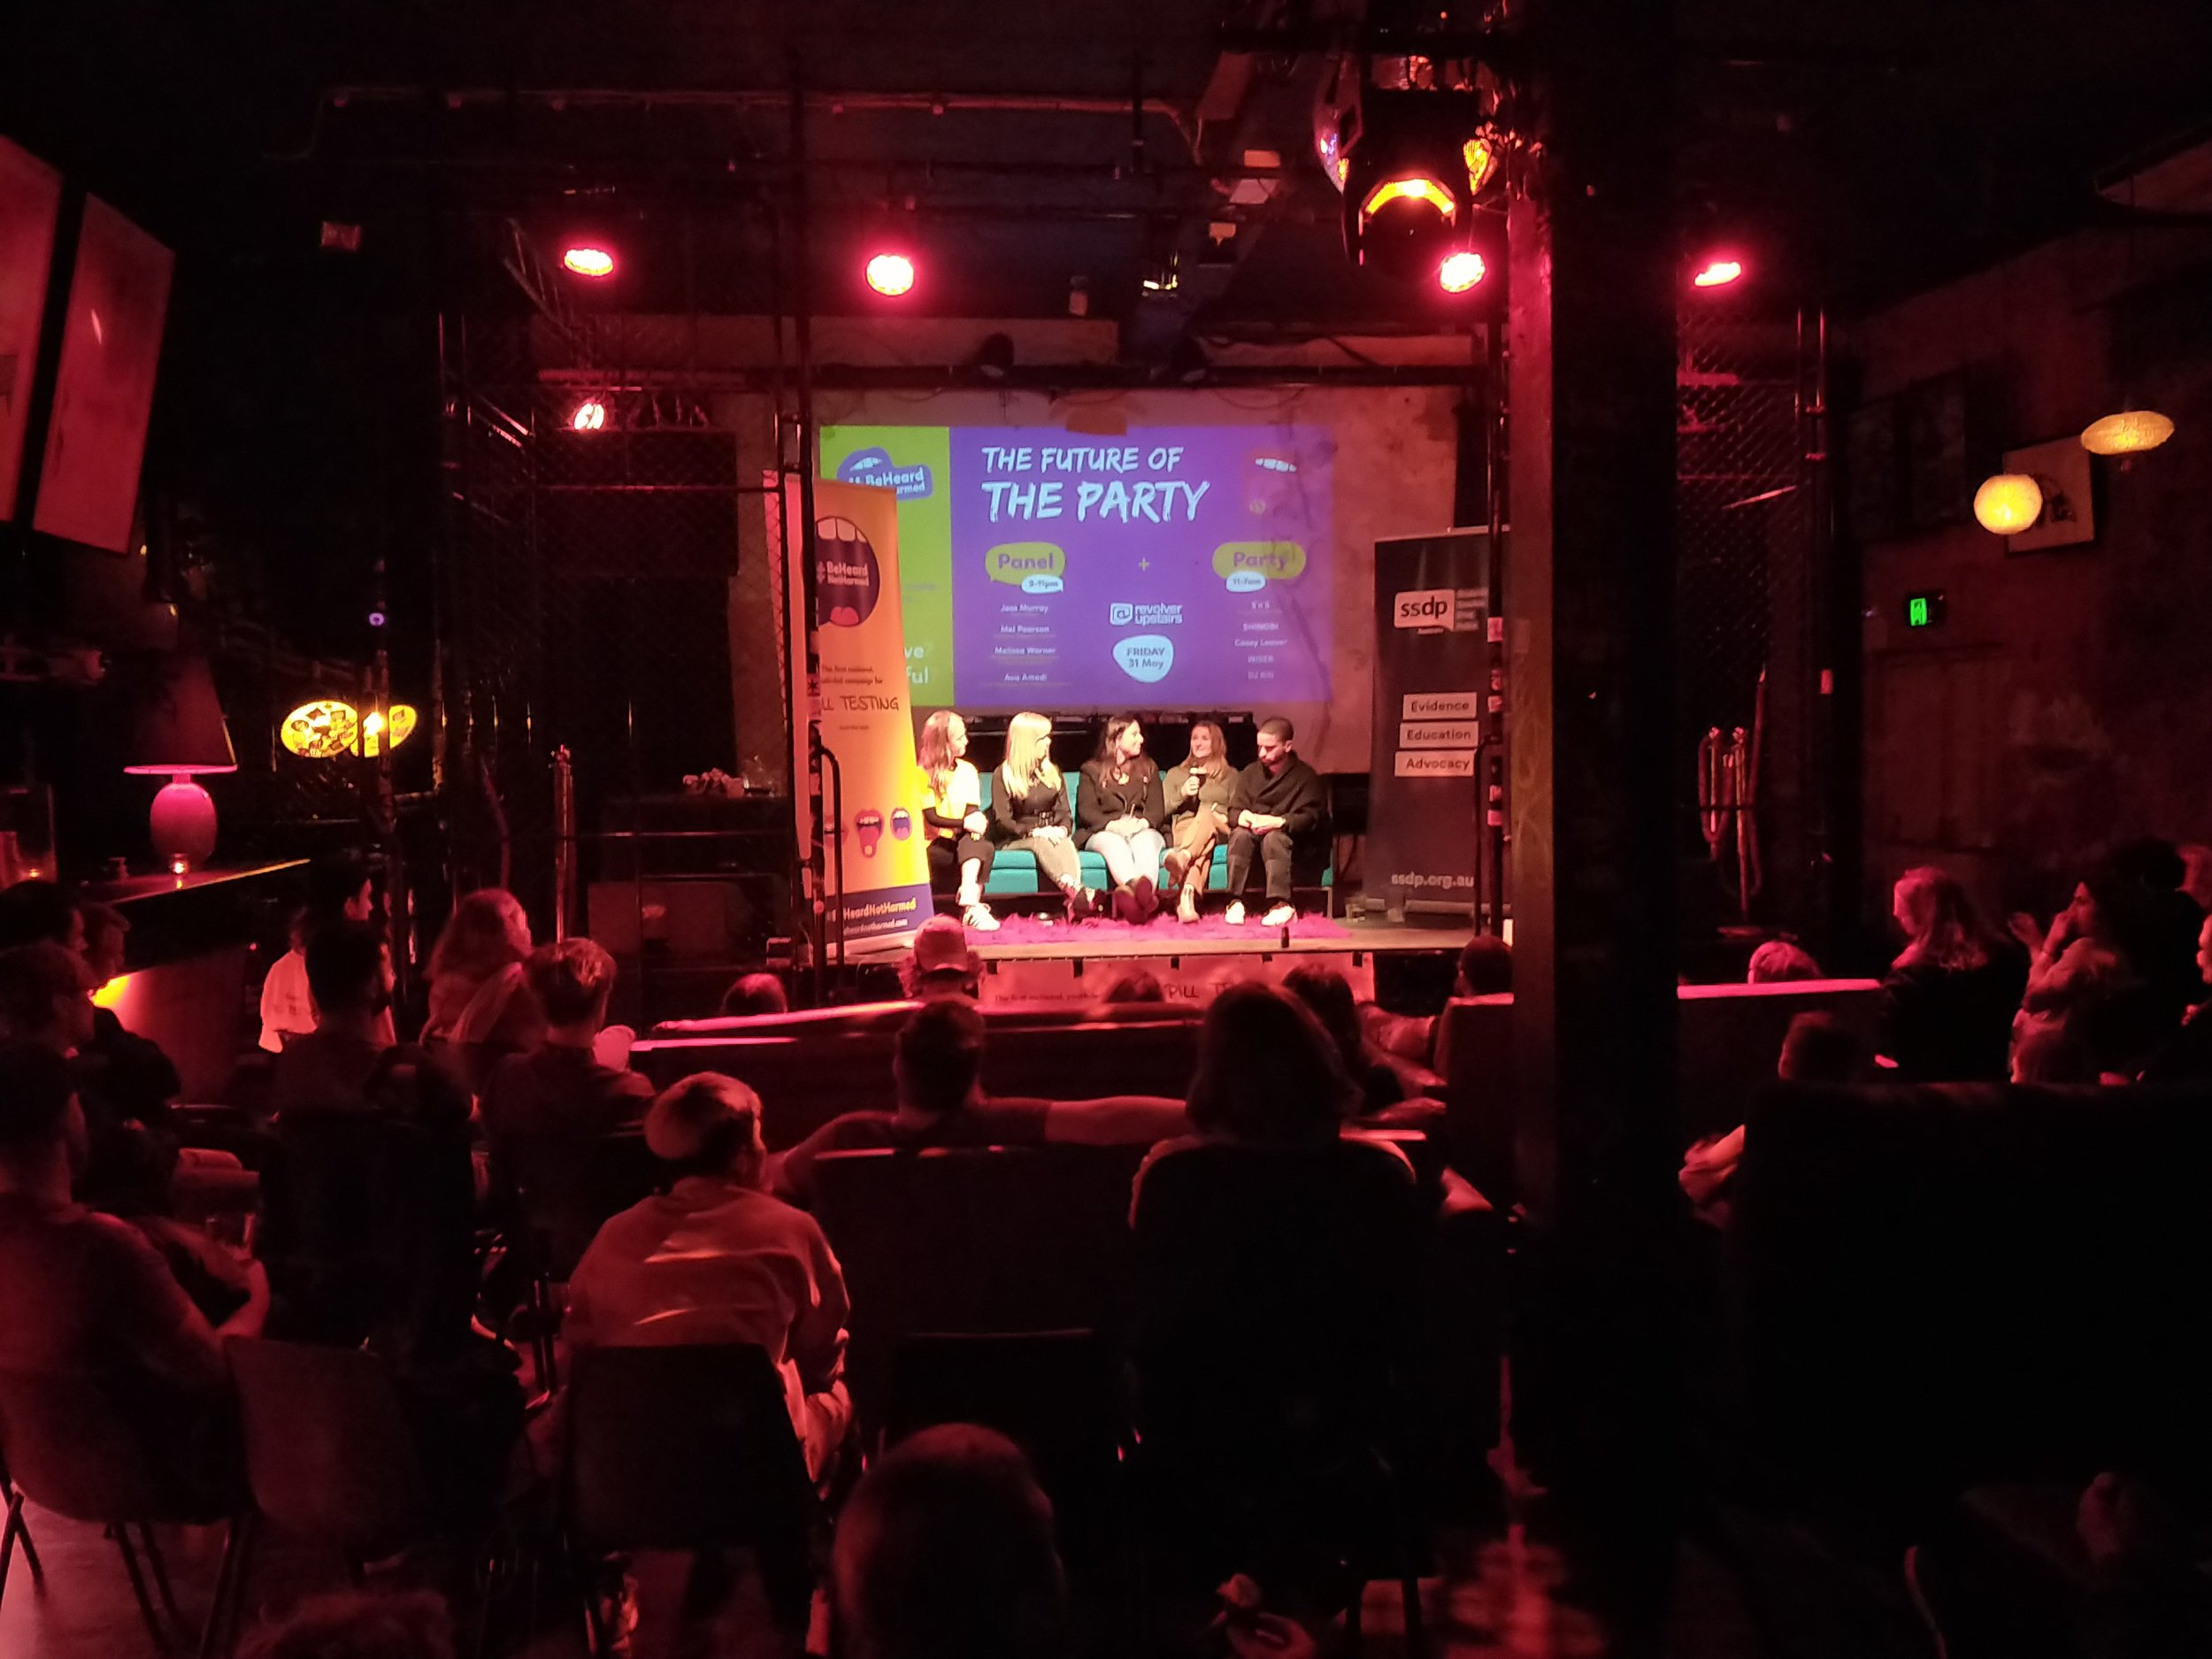 The Future of the Party - Panel Discussion and audience at Revolver Nightclub.jpg